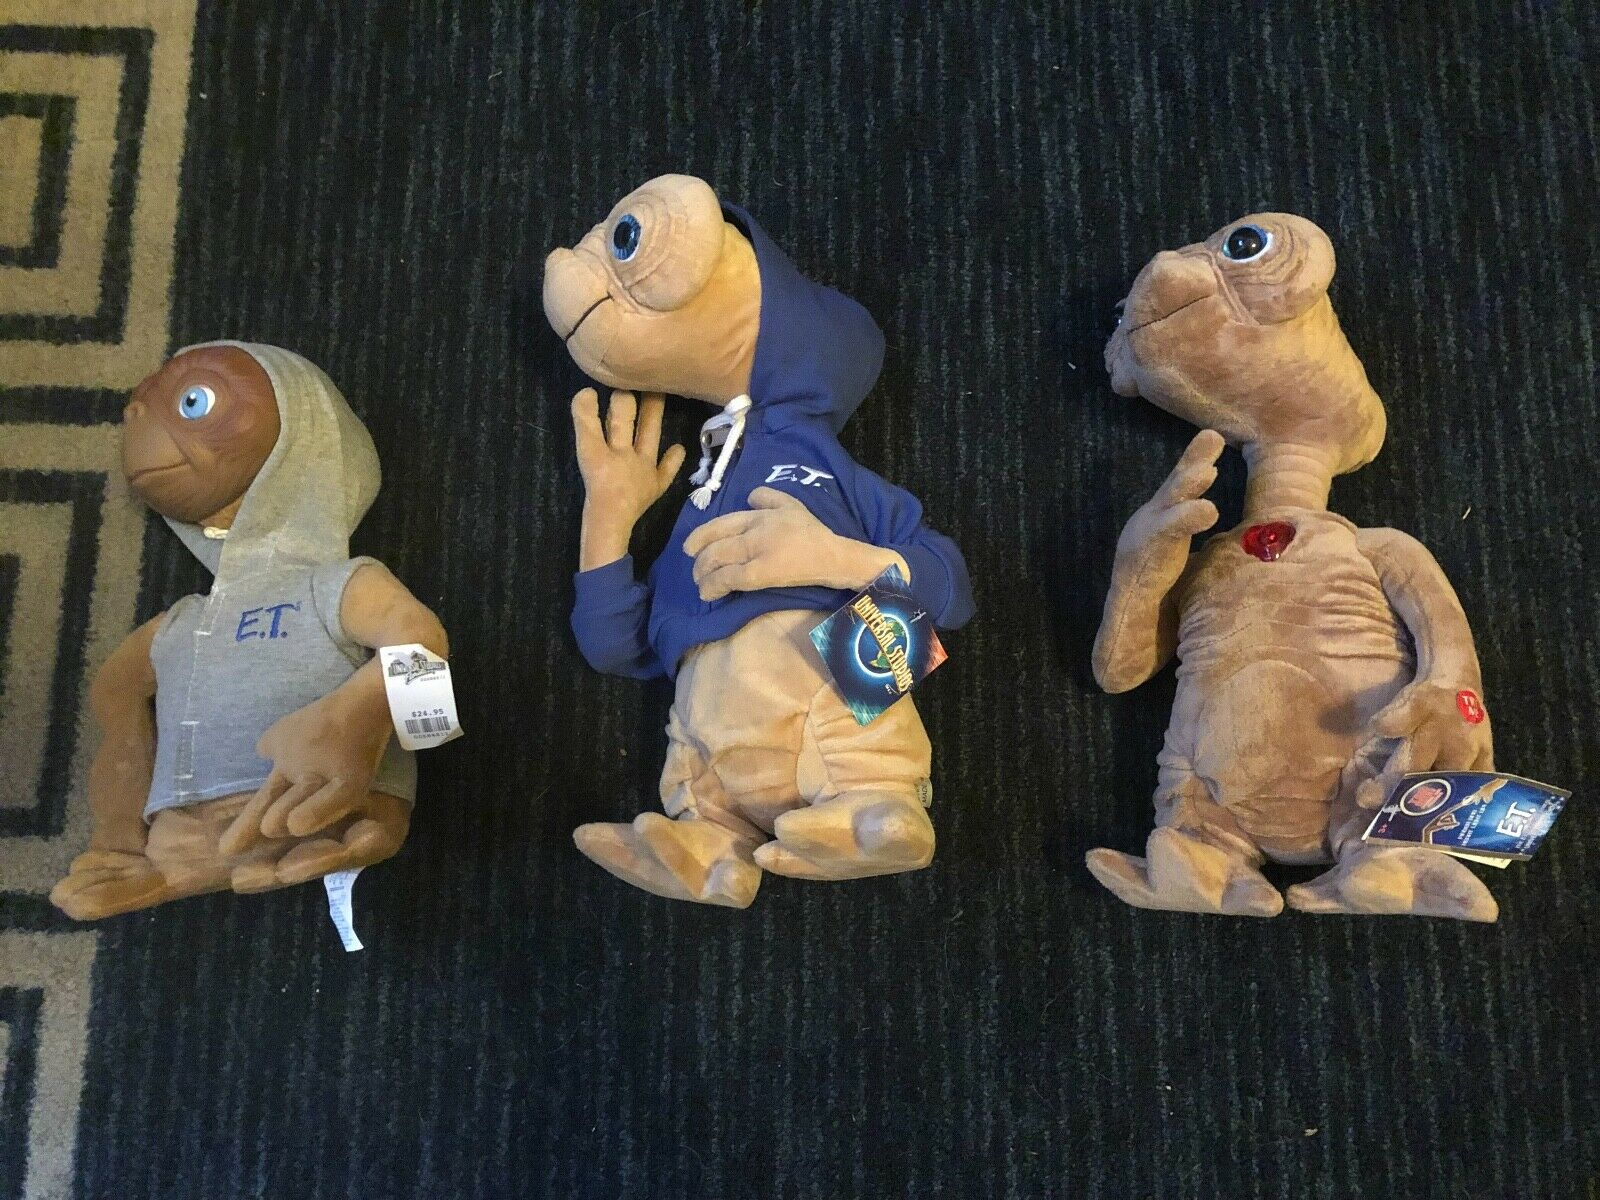 LOT OF 3 E.T. STUFFED ANIMALS FROM UNIVERSAL STUDIOS, NEW W TAGS